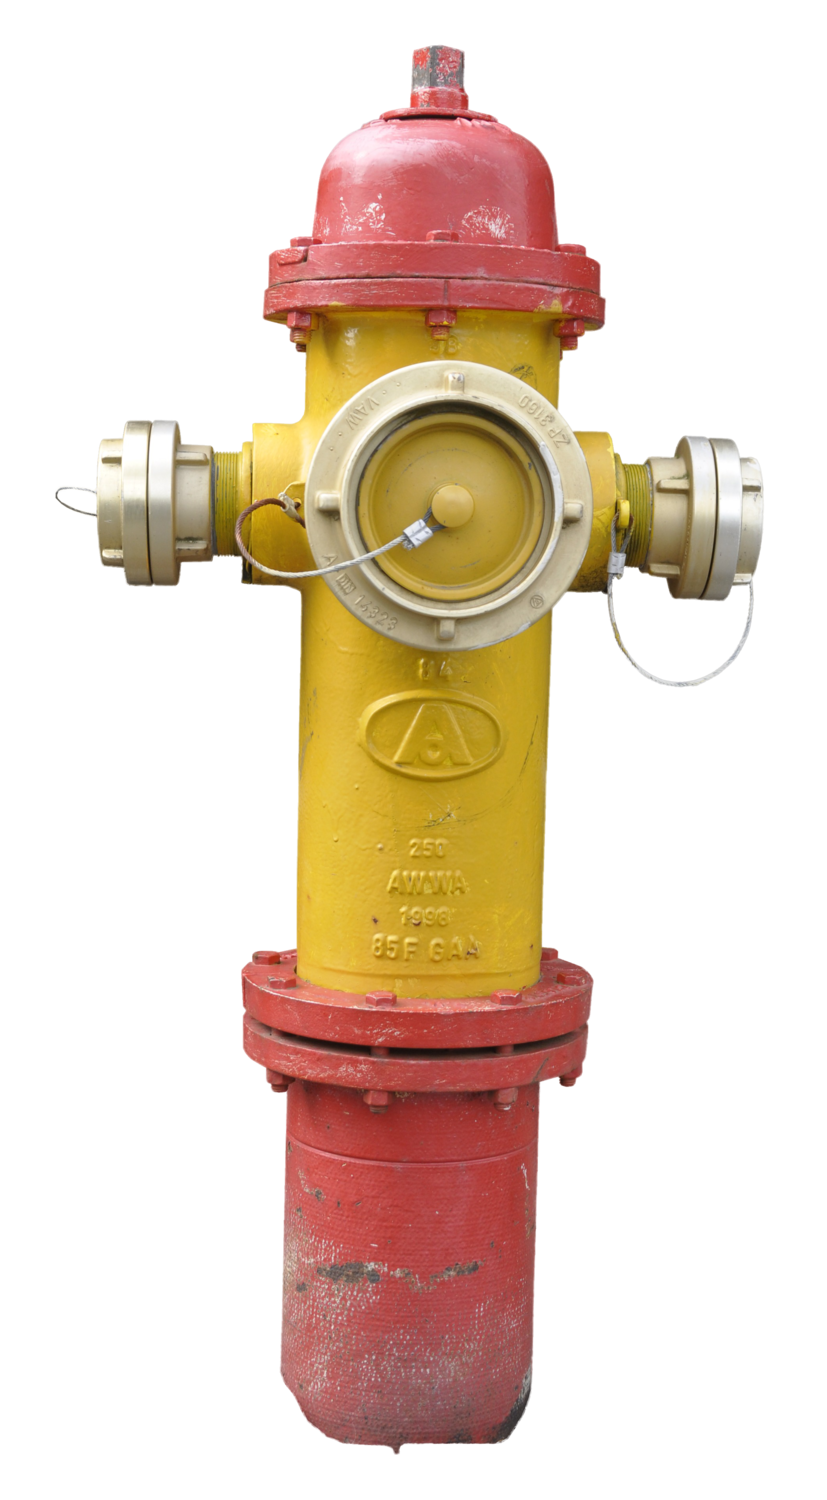 Firehydrantfront